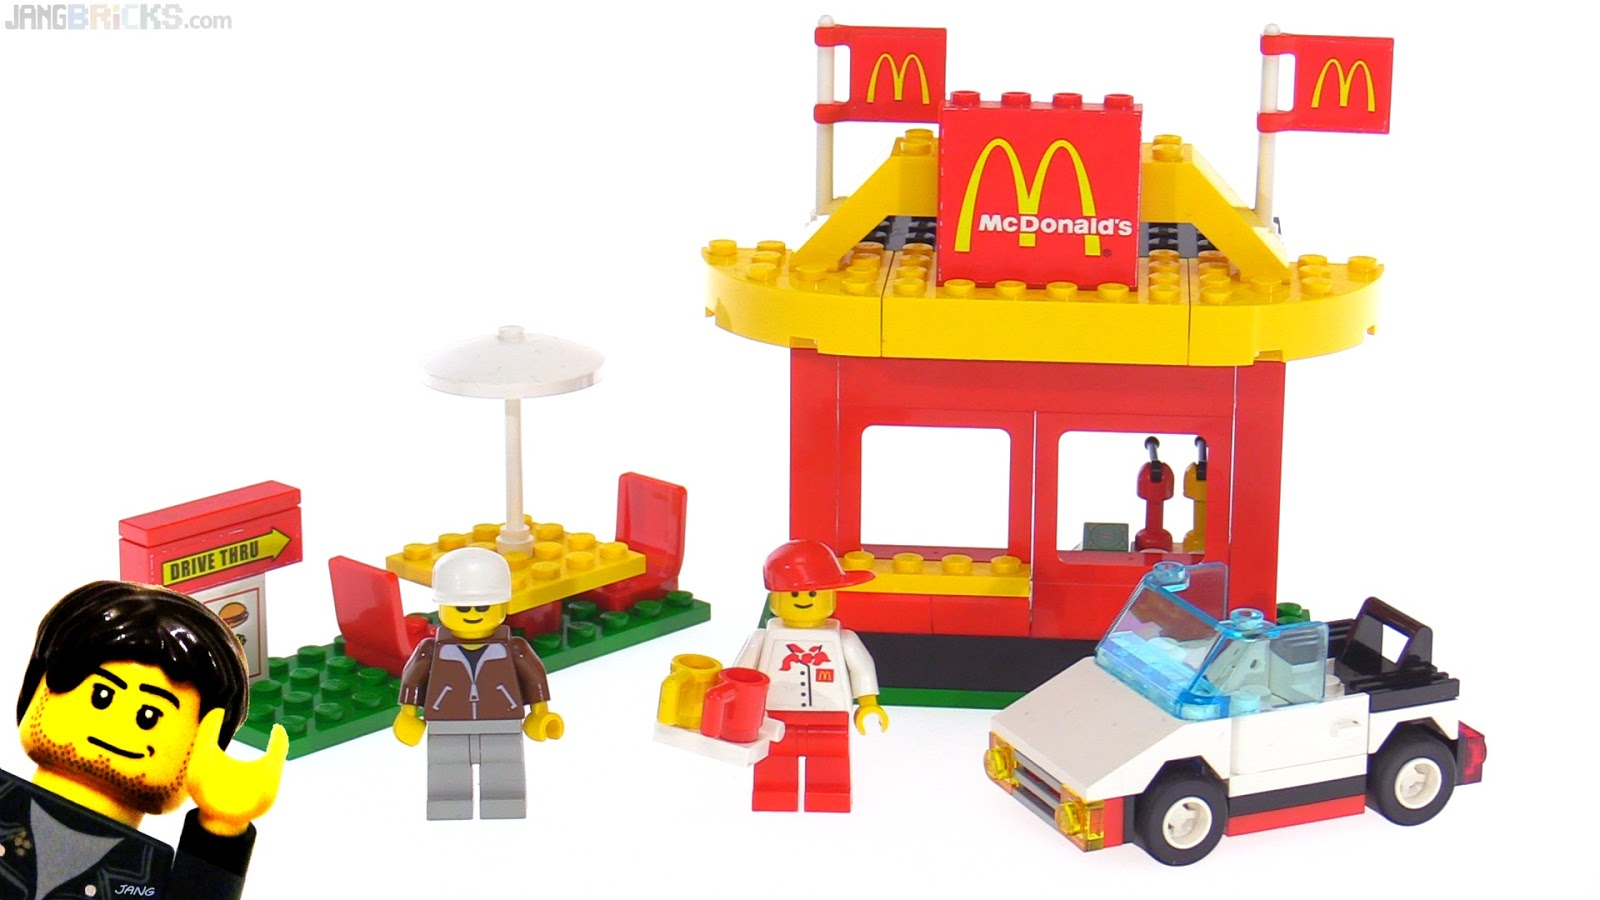 mcdonalds appraisal system Mc donalds performance appraisal - free download as word doc (doc), pdf file (pdf), text file resulting in first-rate appraisal systems mcdonalds 1997 year end system wide sales were $ 33,3683 billion.